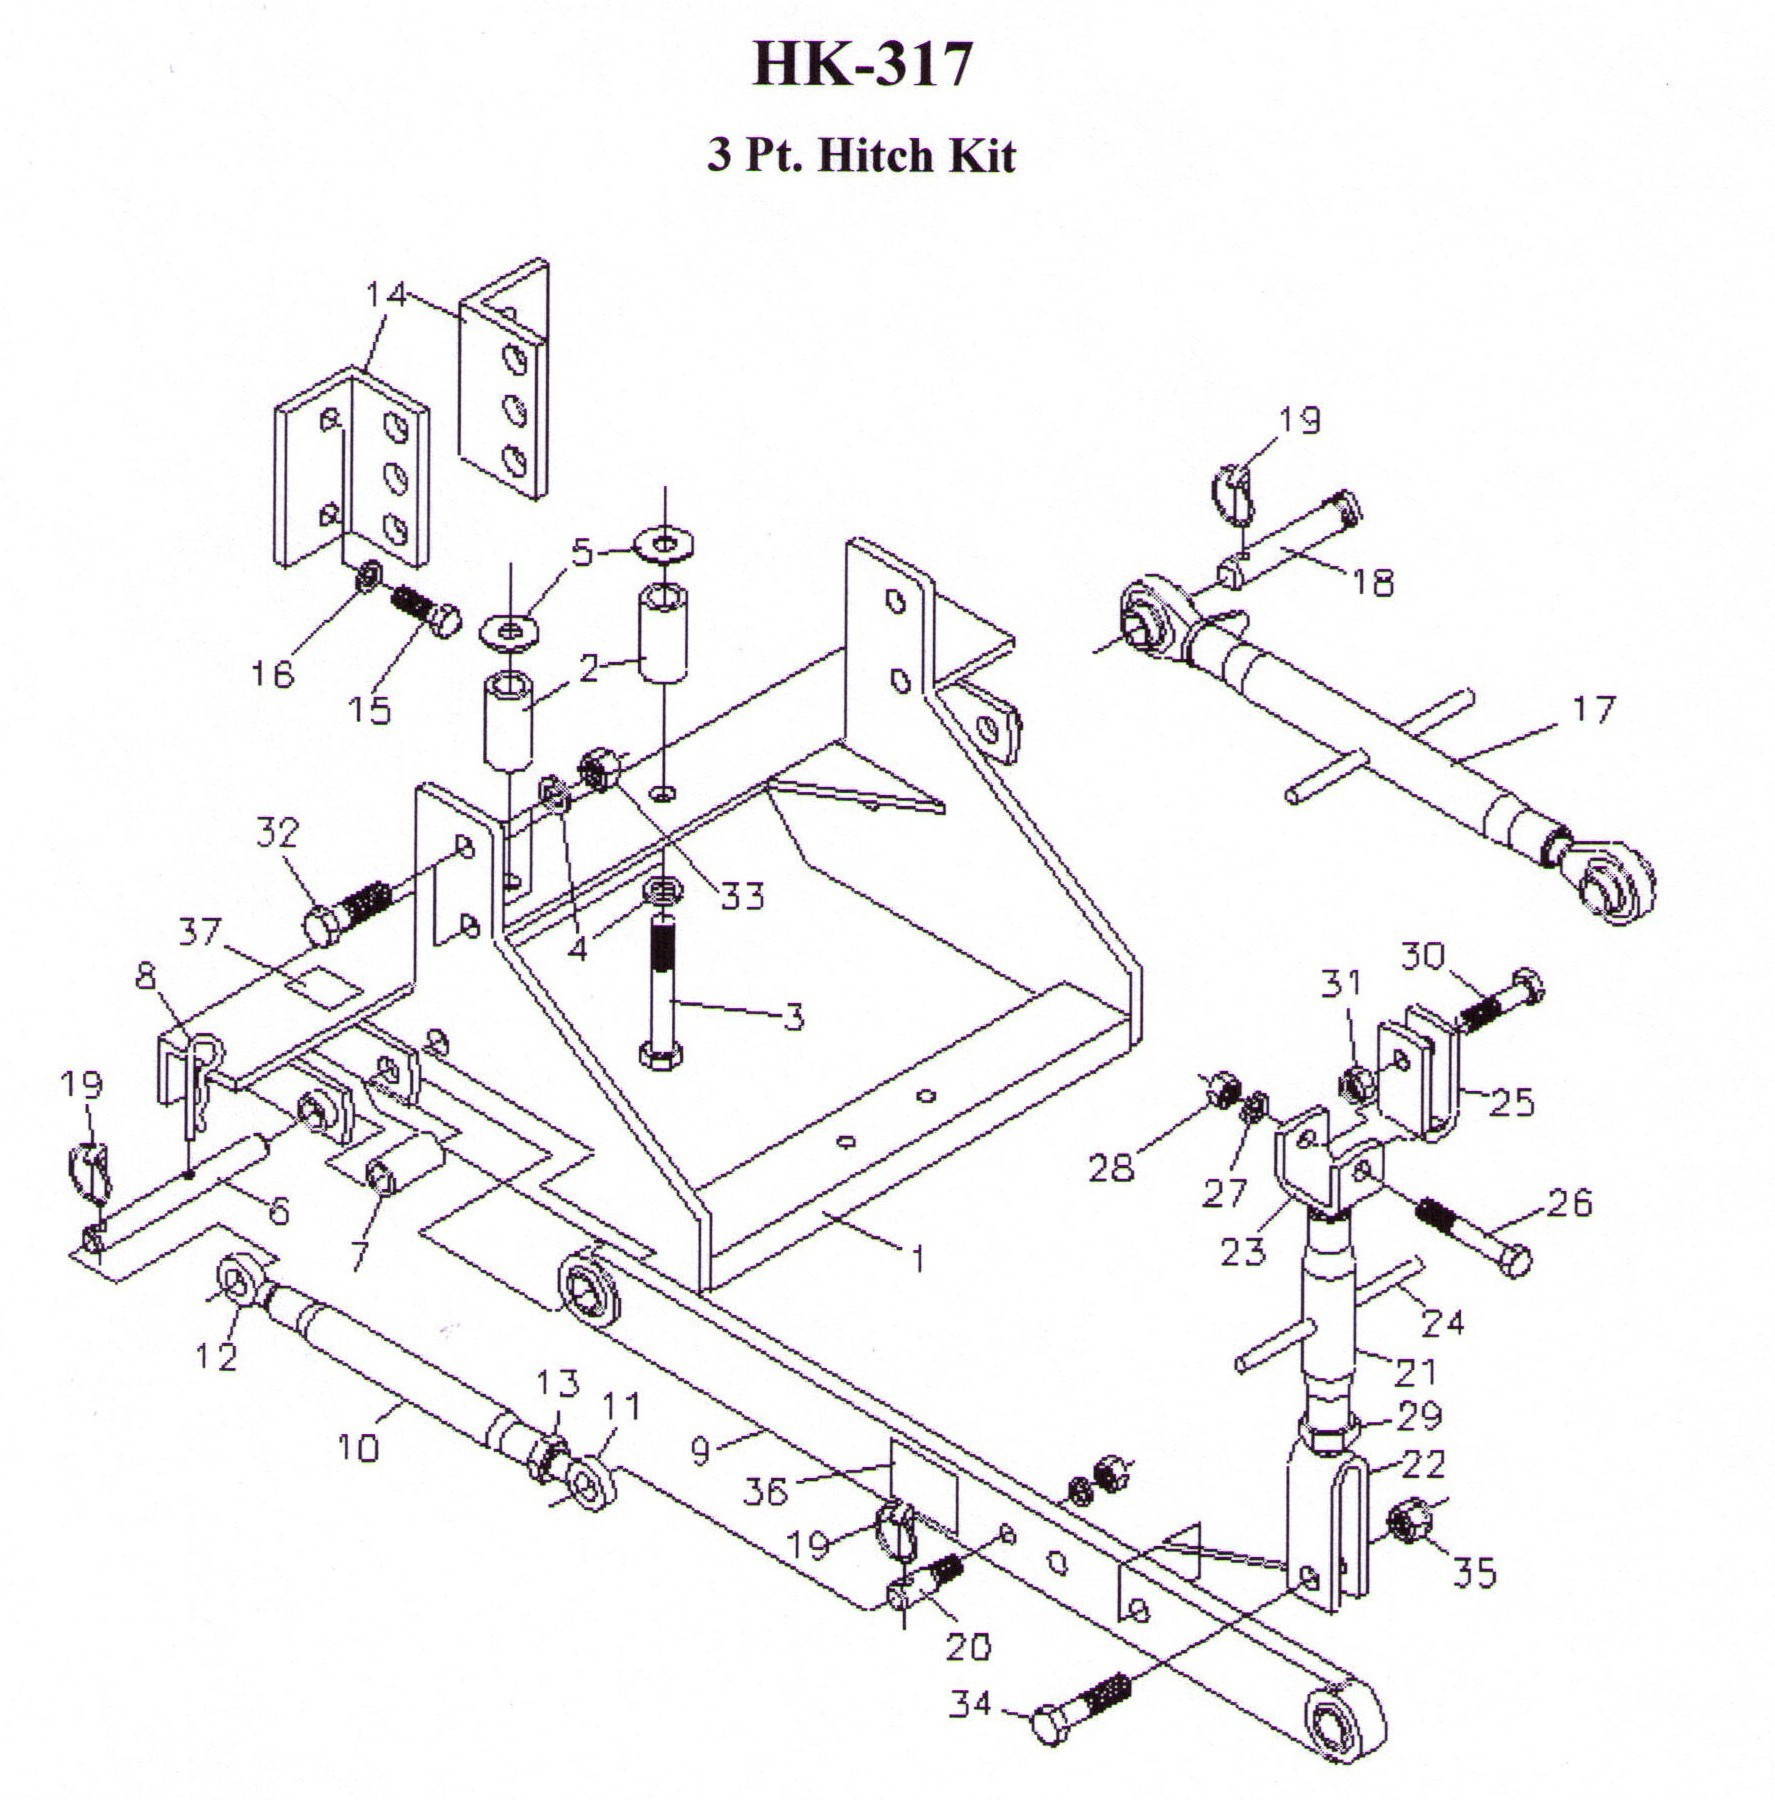 WRG-7159] John Deere L110 Wiring Diagram on jd 430 wiring diagram, jd 318 wiring diagram, jd 455 wiring diagram, jd 265 wiring diagram, jd 317 engine, jd 425 wiring diagram,